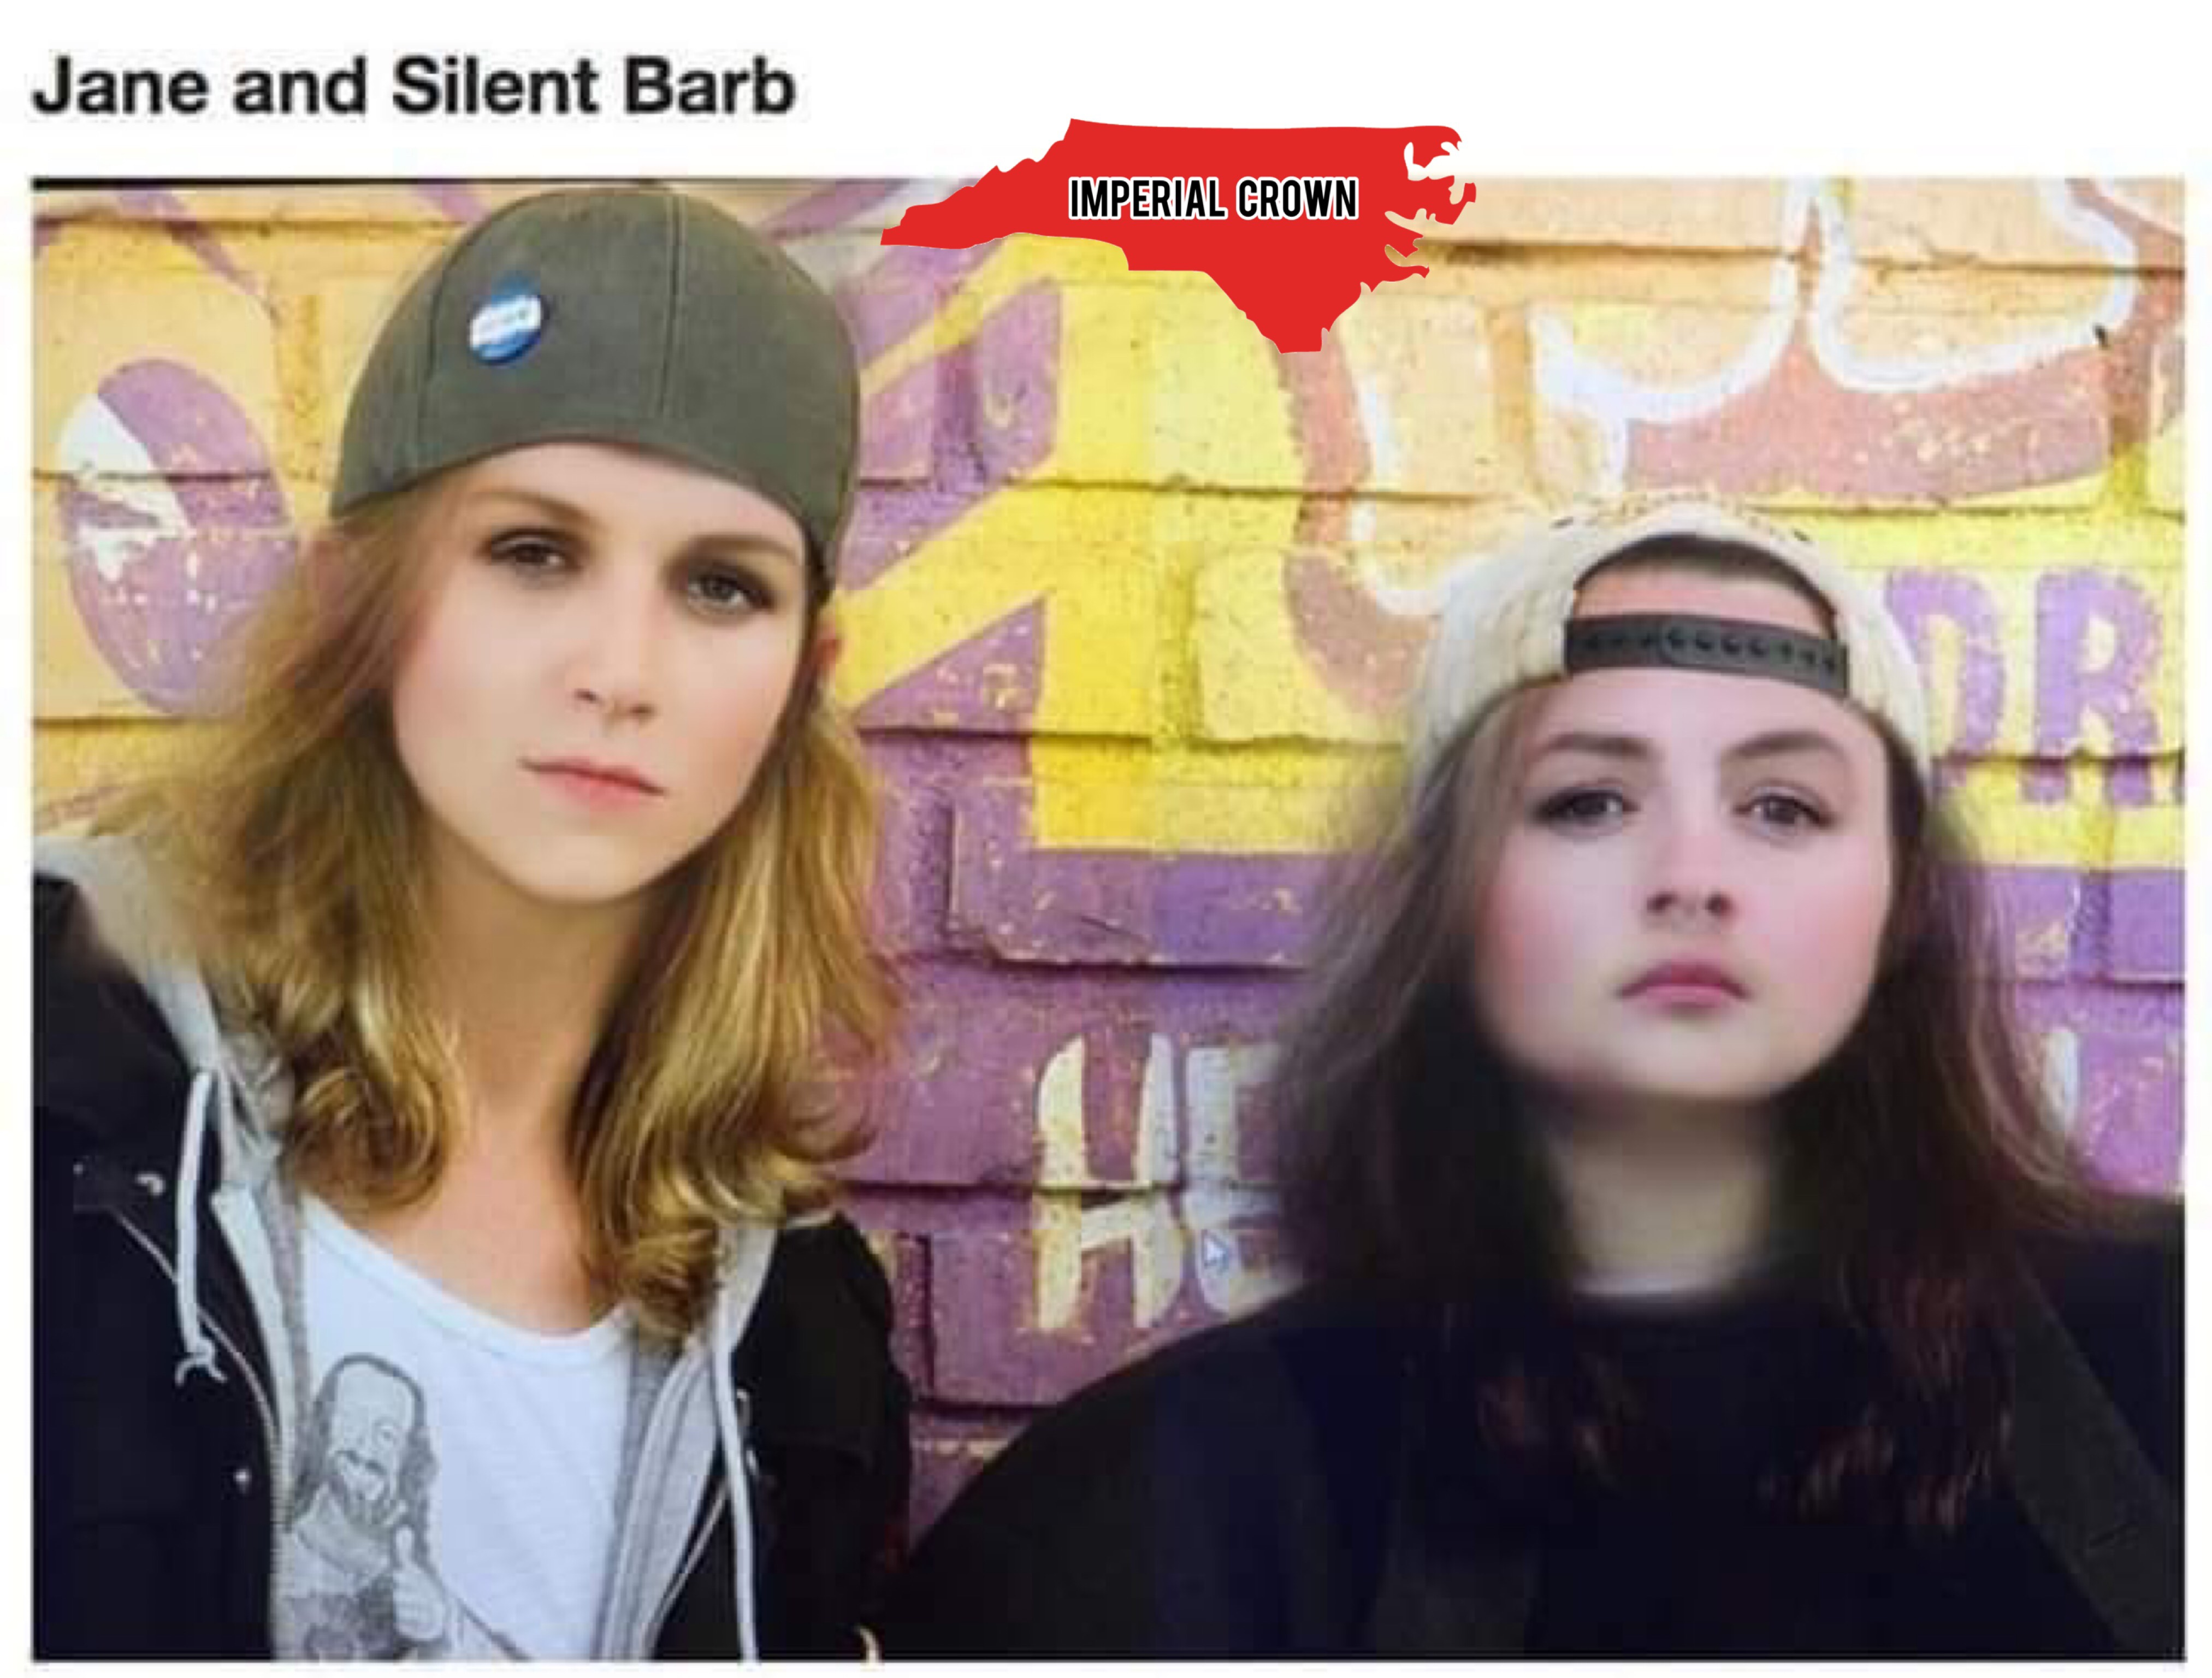 Jane and silent barb……